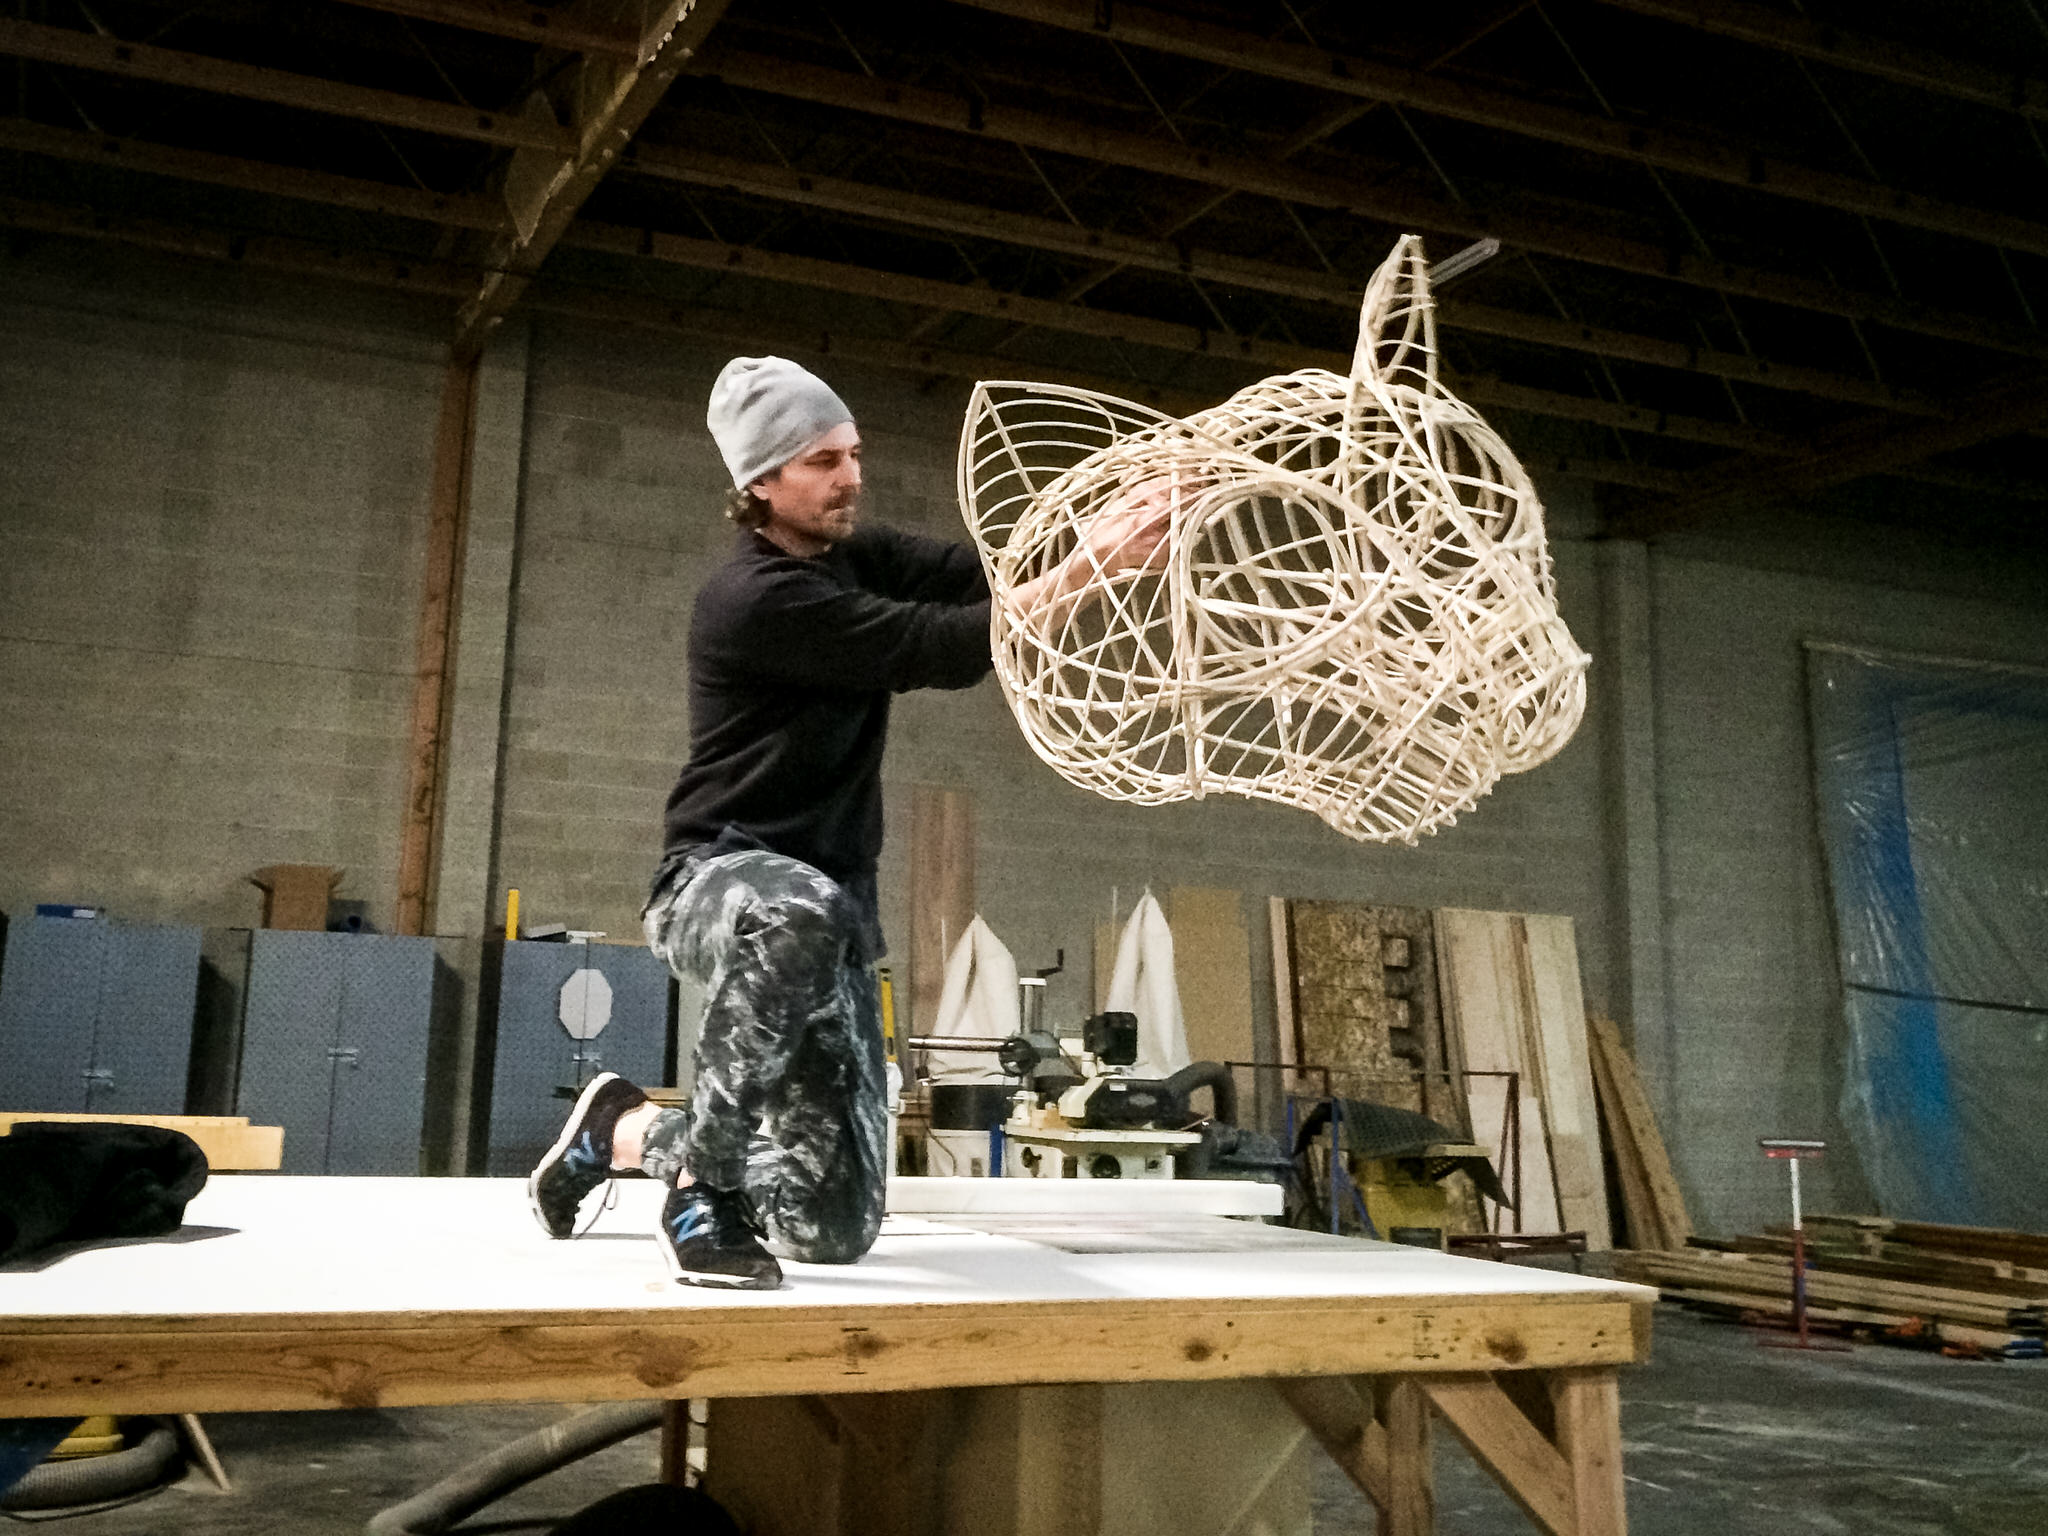 Since the actor would often be operating the head one-handed, it had to be light. I hadn't built a wicker piece since college, but it was obviously the right approach. Here Robert Scott Smith tries it out for the first time.